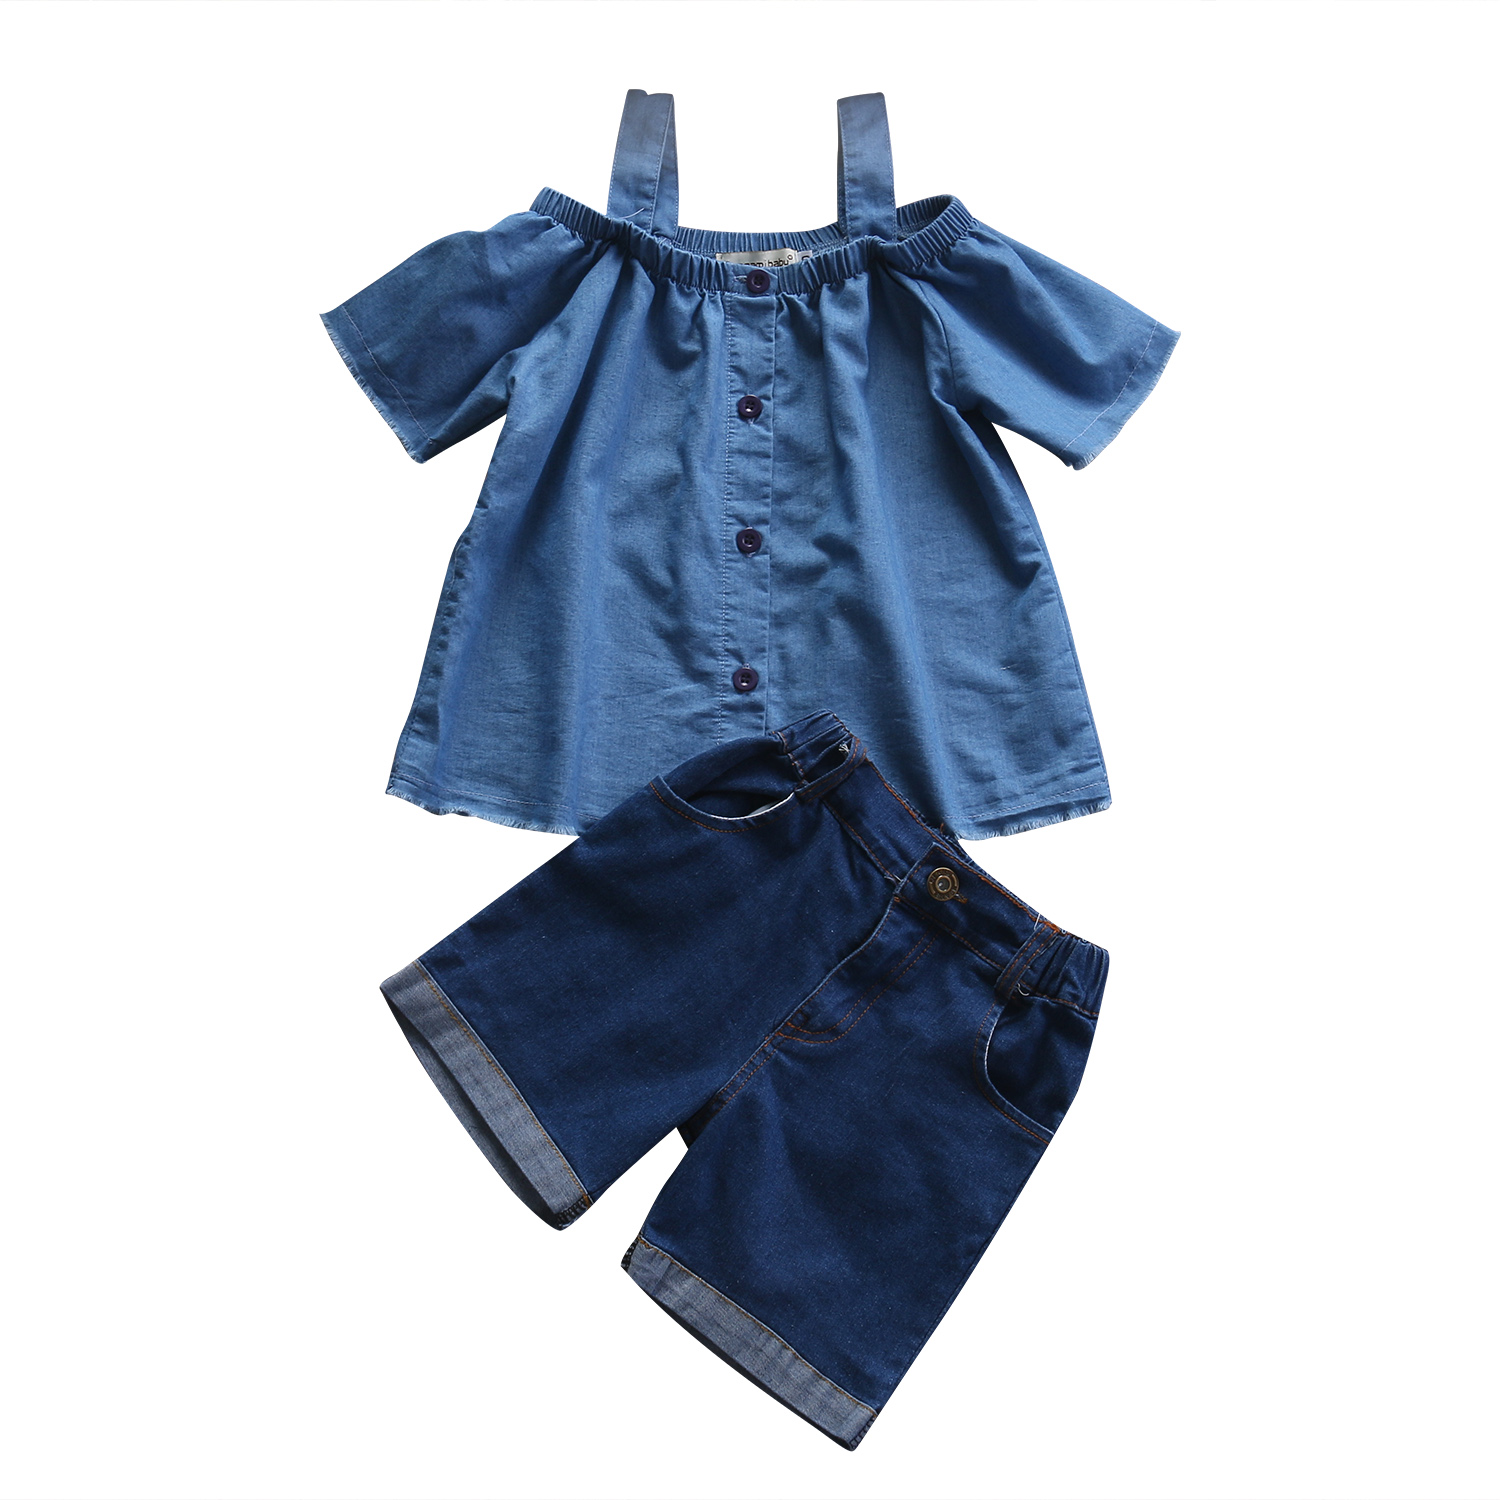 Denim Baby Girls Kids Summer Outfits Off Shoulder Blouse Tops + Denim Pants 2Pcs Clothing Set